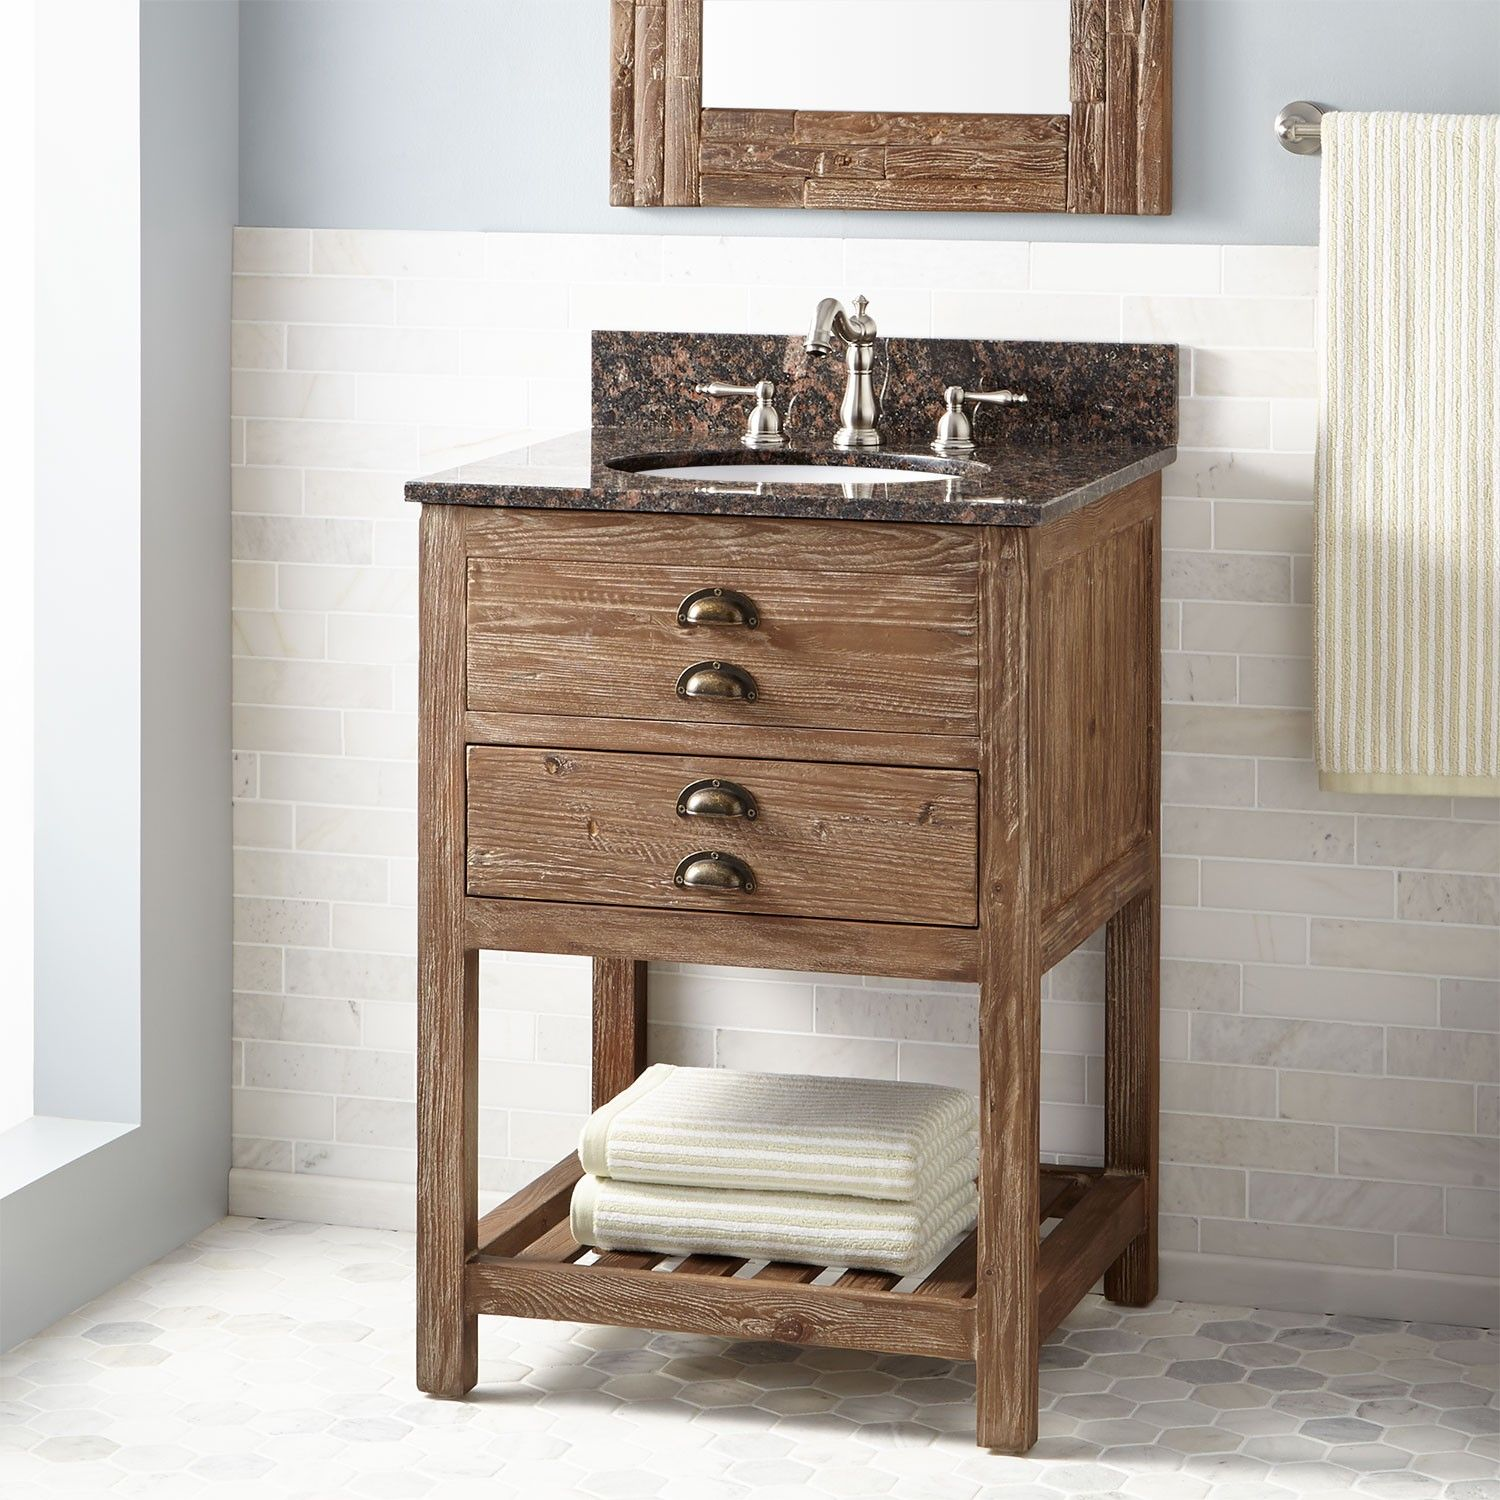 Solid Wood Bathroom Vanities Made In Usa